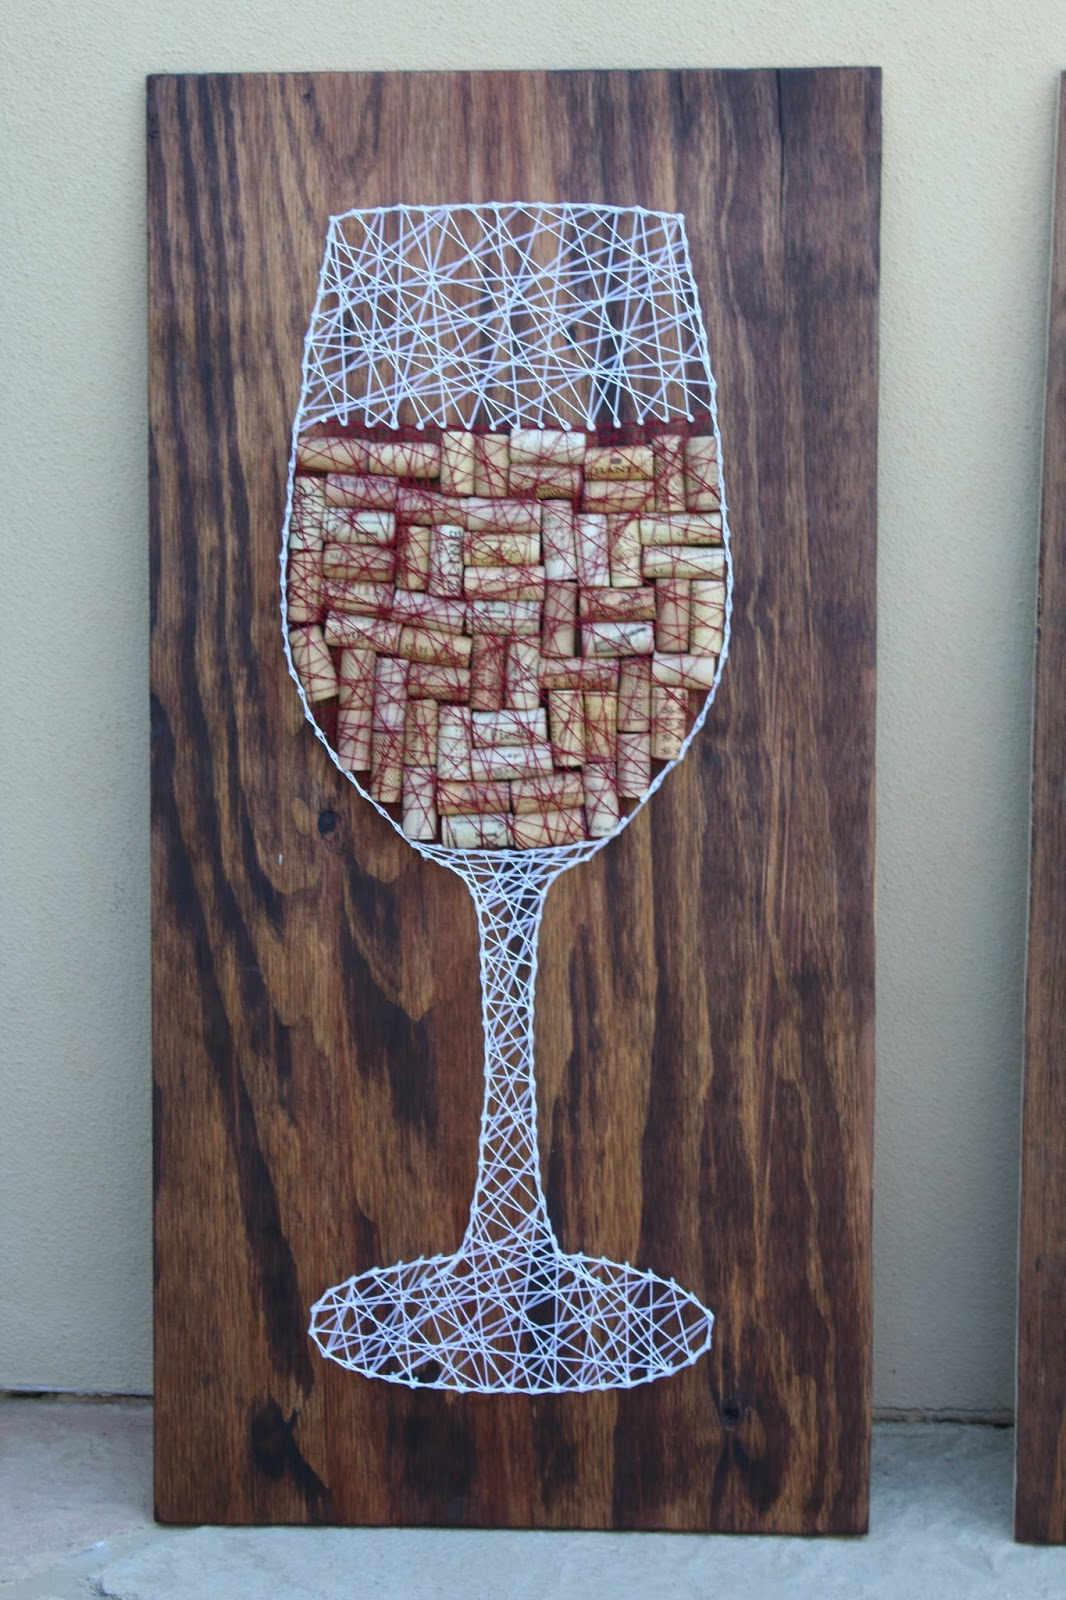 Diy Wine Cork String Art Tutorial Sam Rhymes With Ham